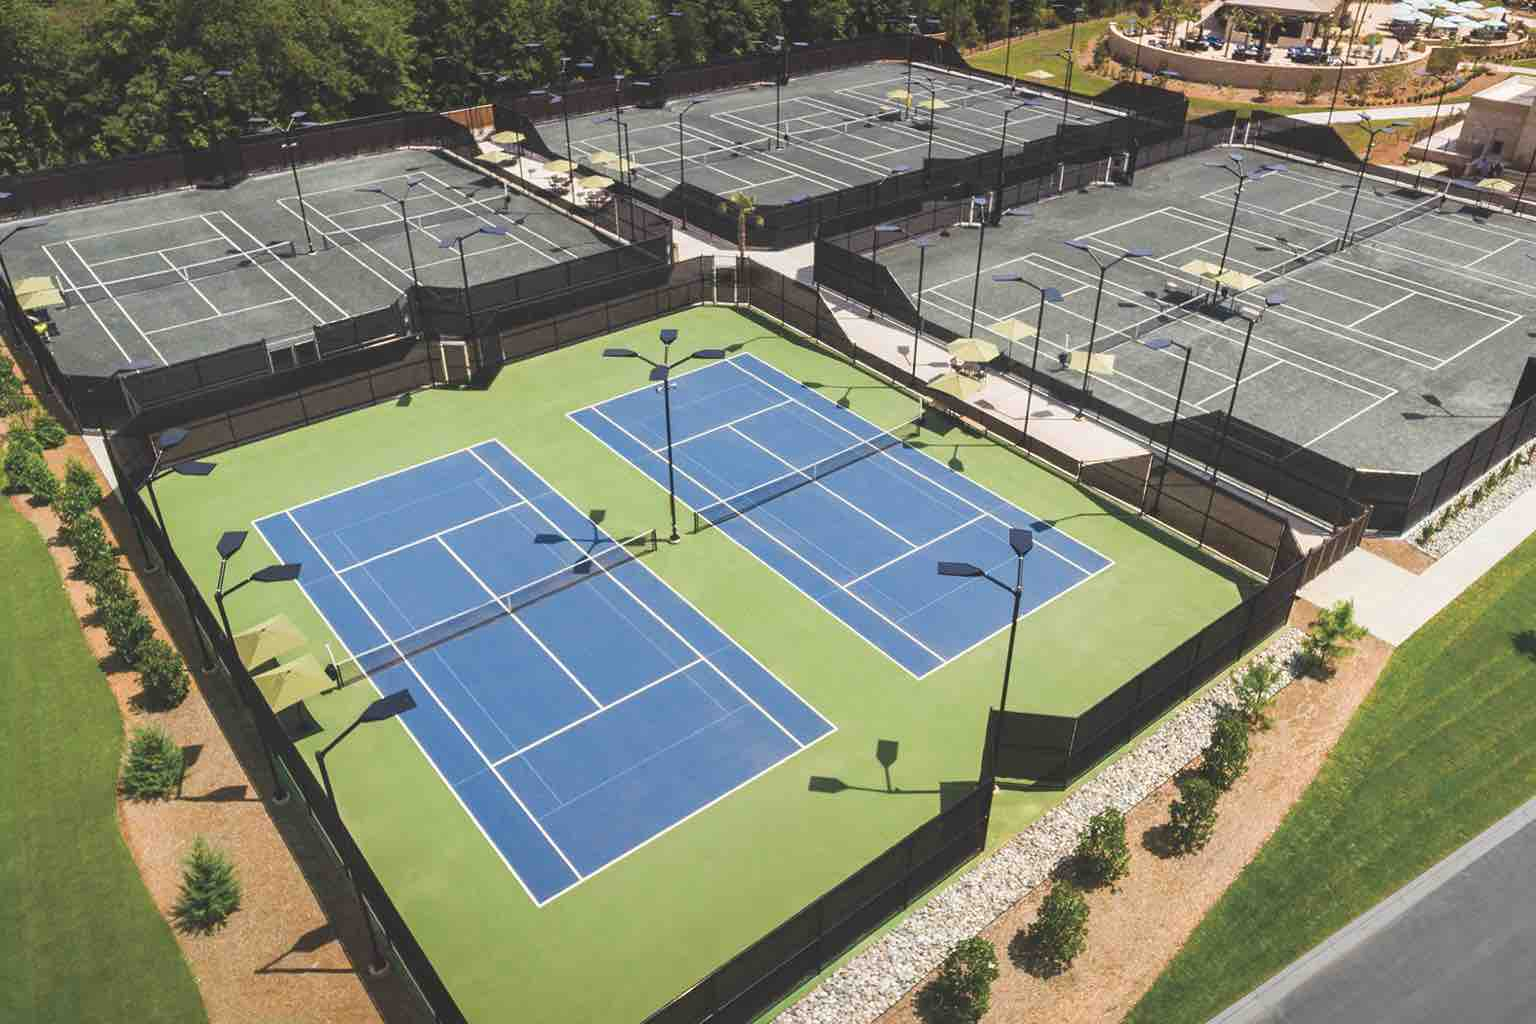 Ten adjoining outdoor tennis courts at Life Time in Charlotte, North Carolina